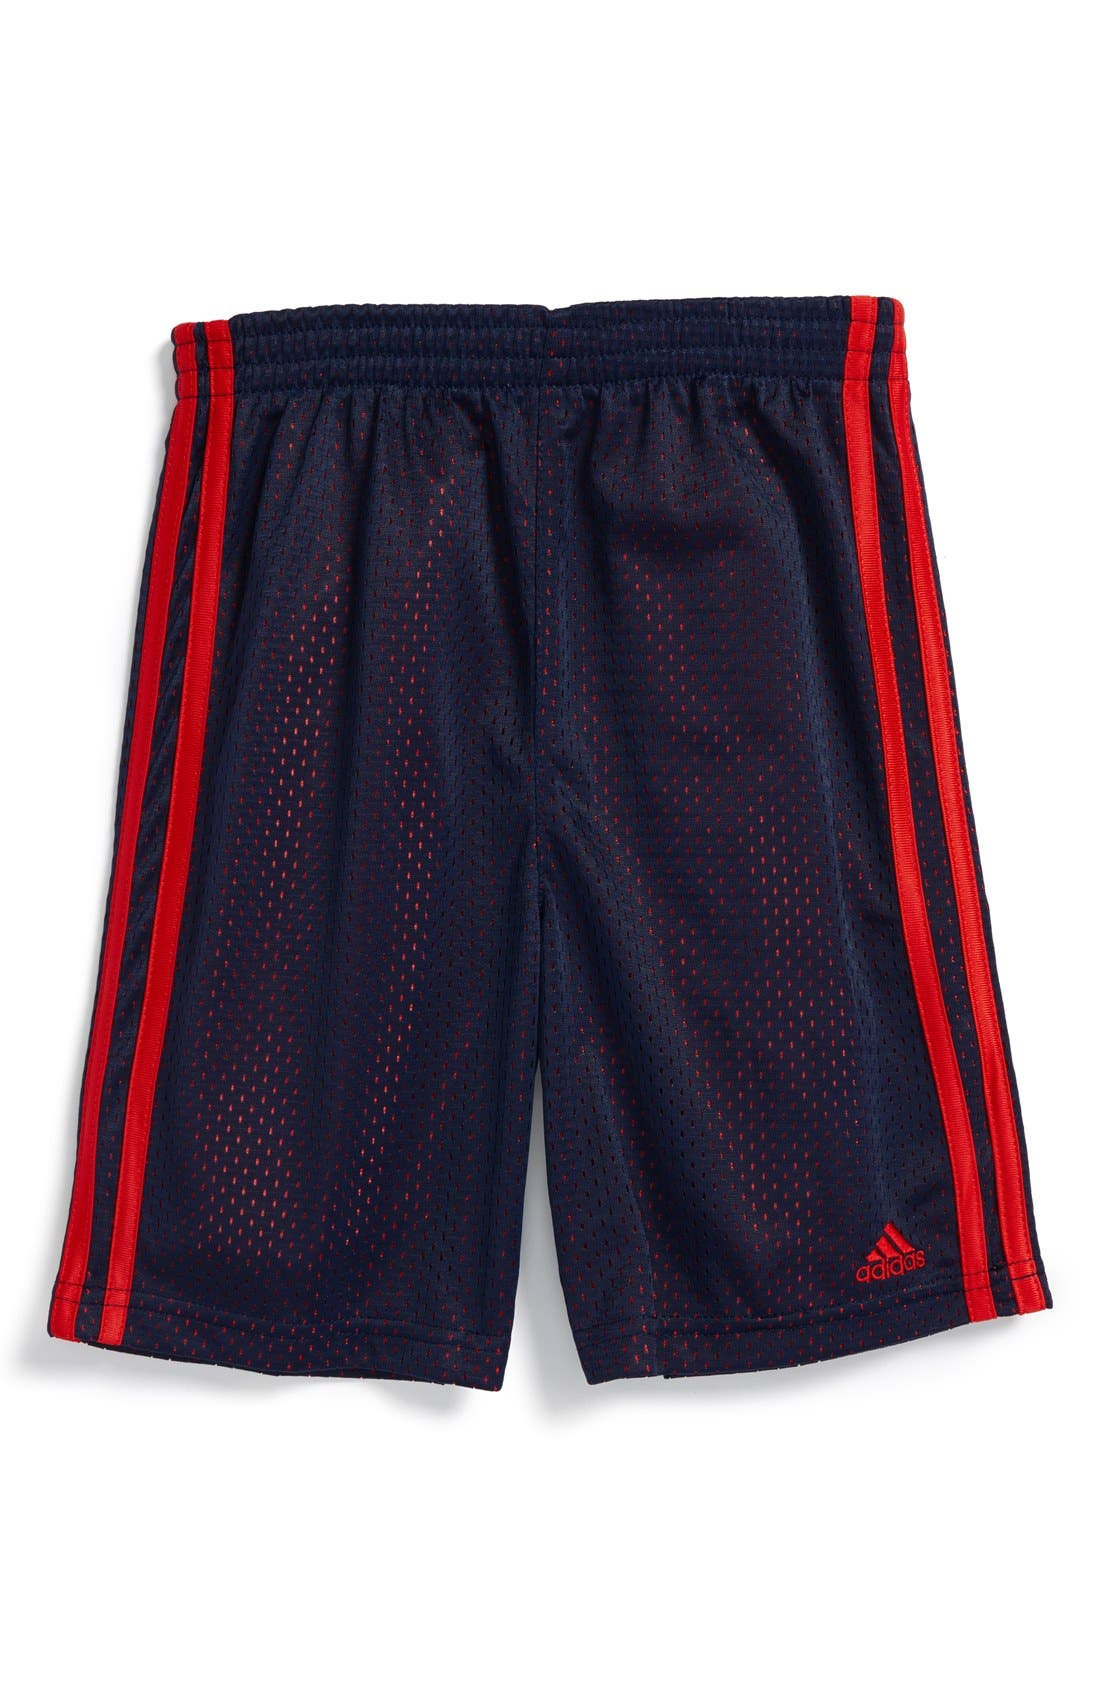 Alternate Image 1 Selected - adidas Mesh Shorts (Little Boys)